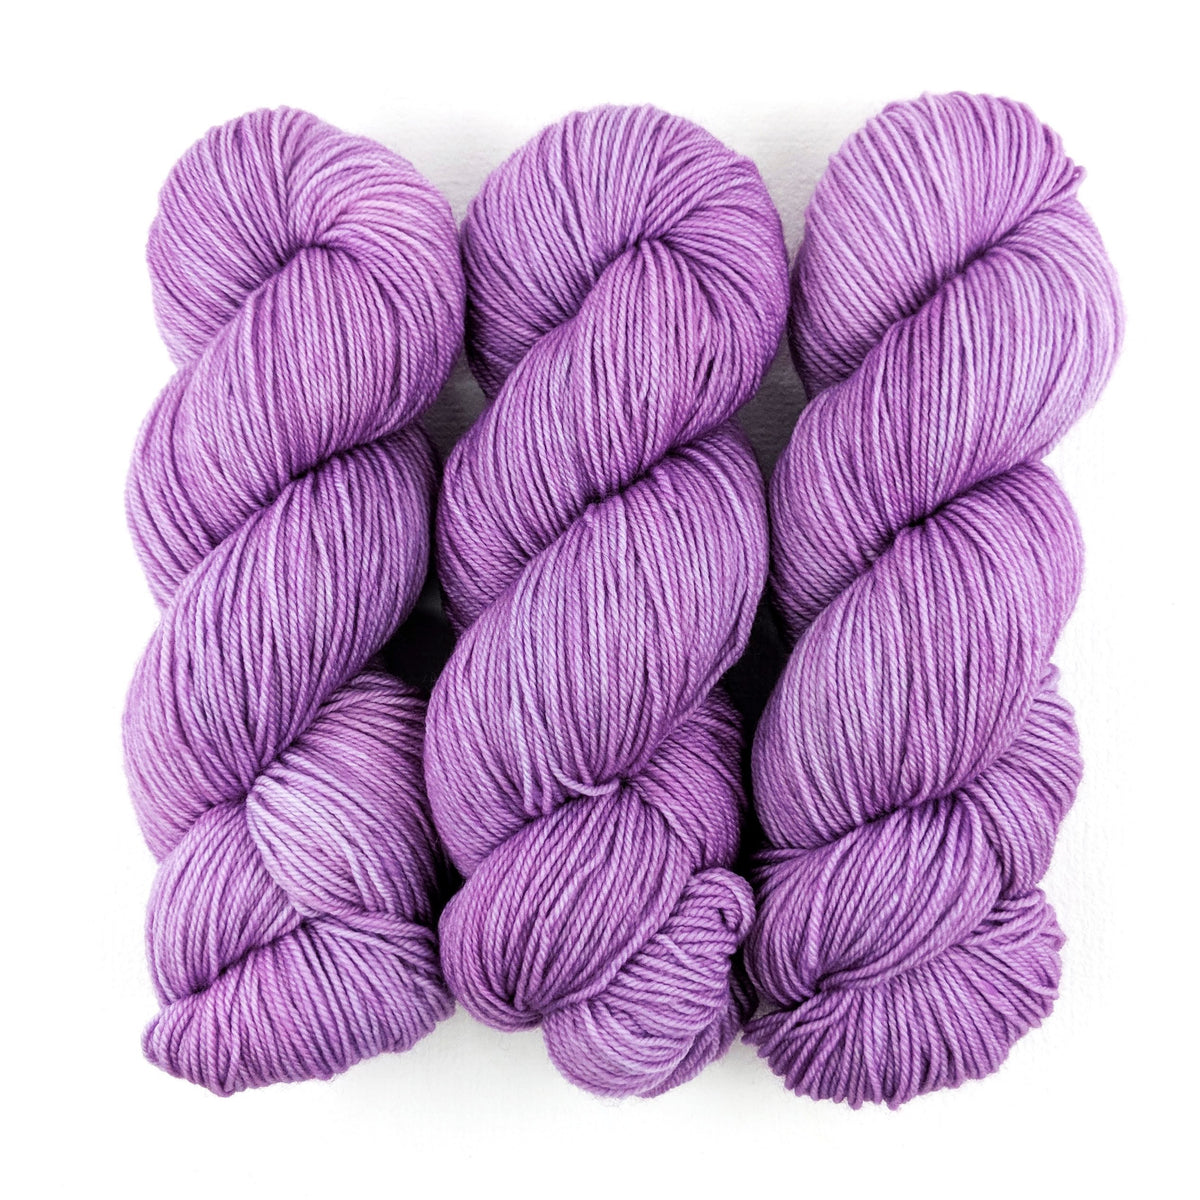 House Orchid - Passion 8 Sport - Dyed Stock